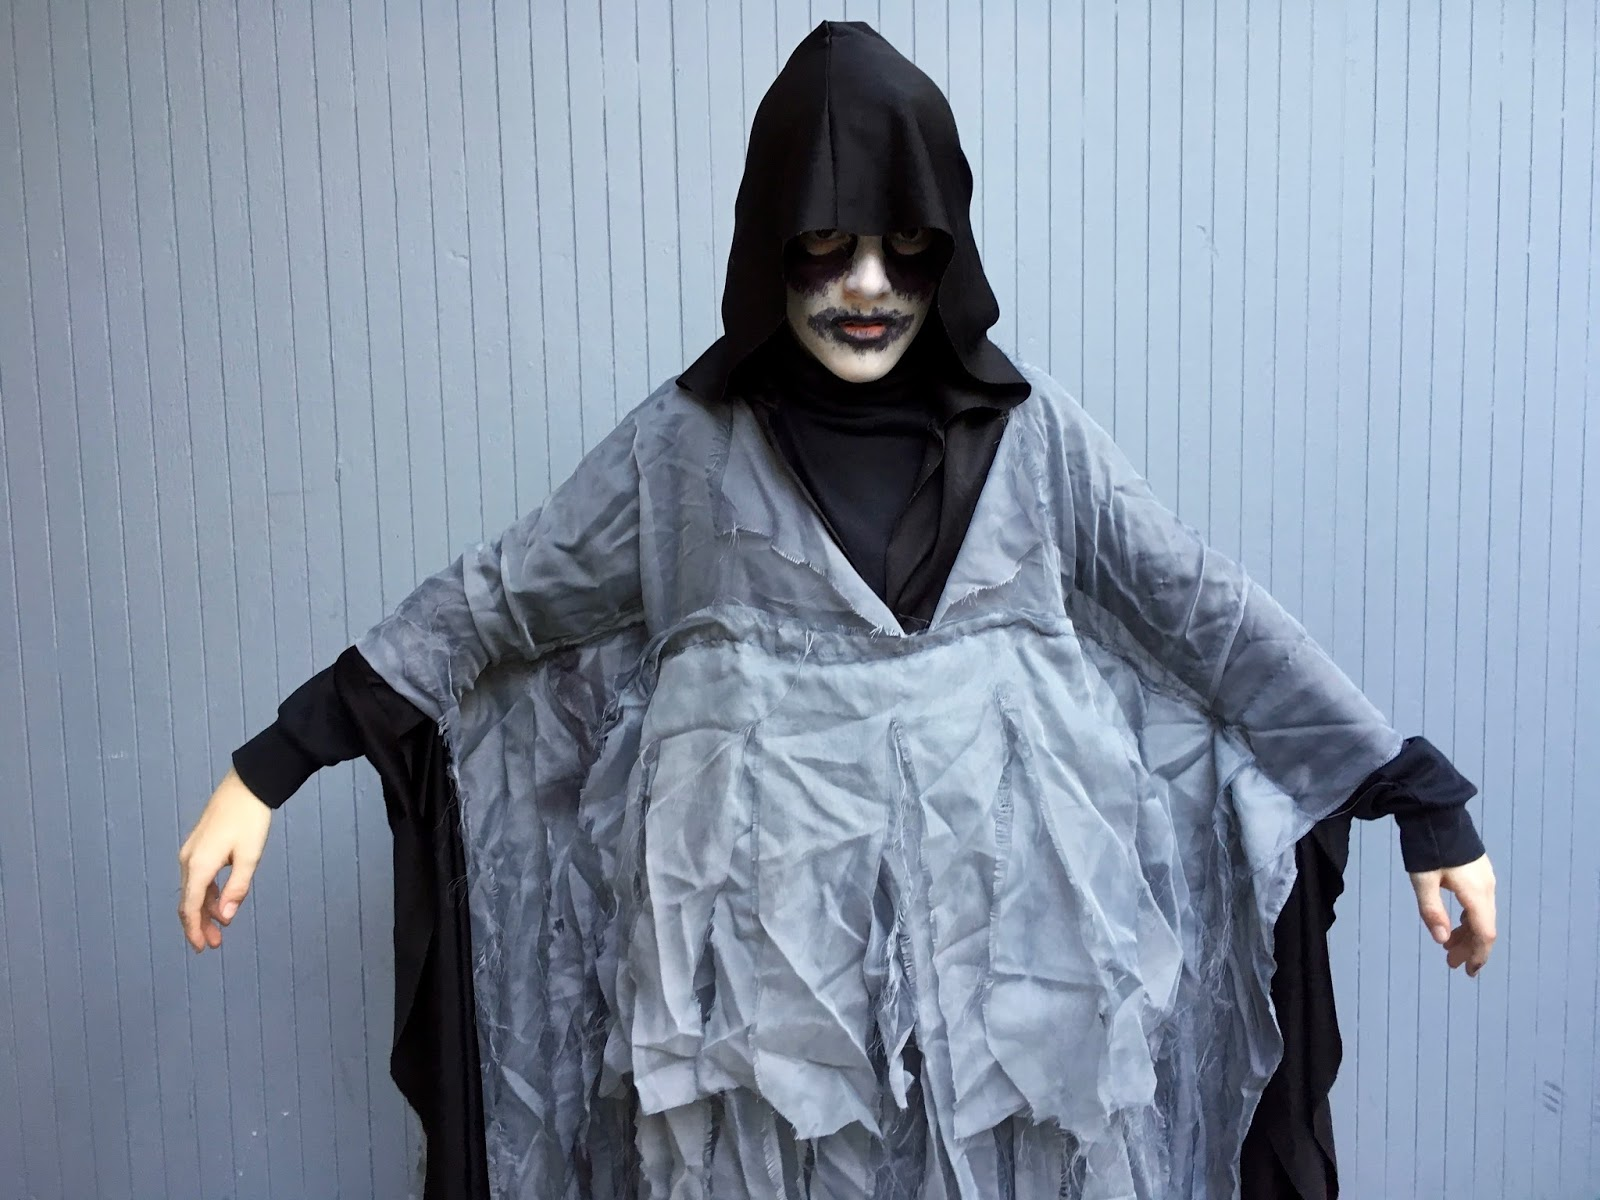 started out as the grim reaper but later became a dementor from harry potter